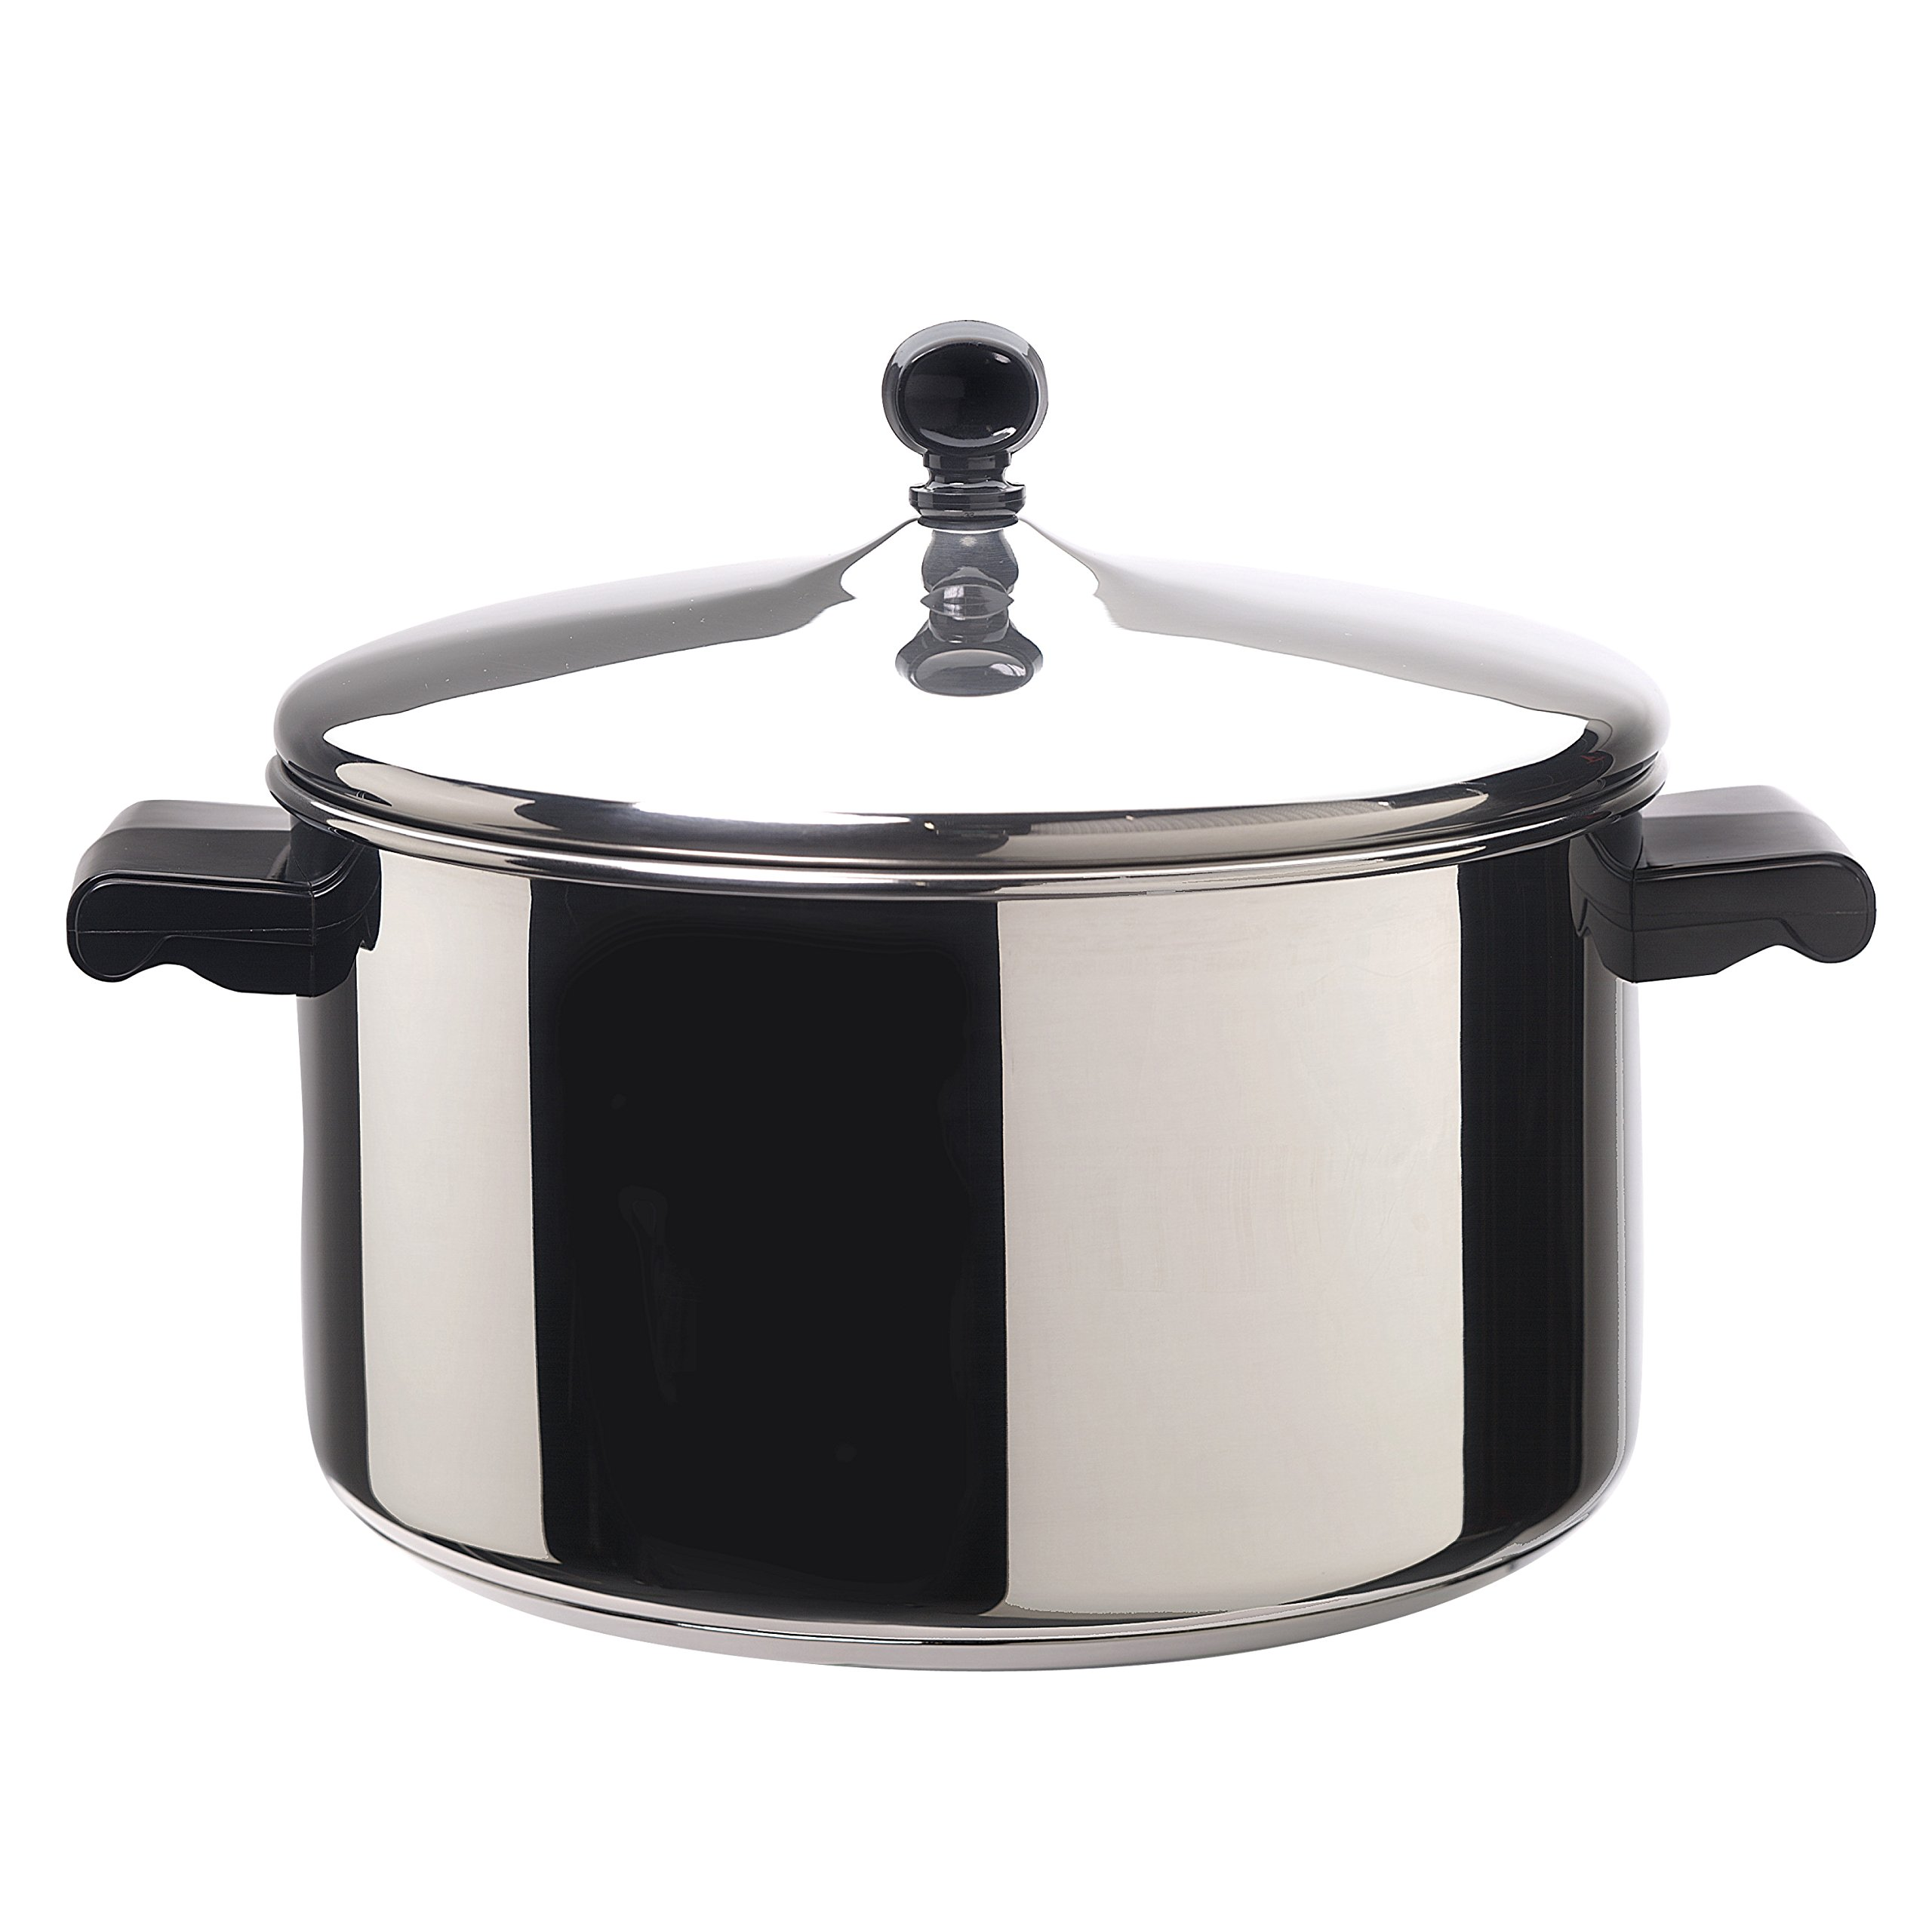 Farberware Classic Stainless Steel 6-Quart Covered Stockpot by Farberware